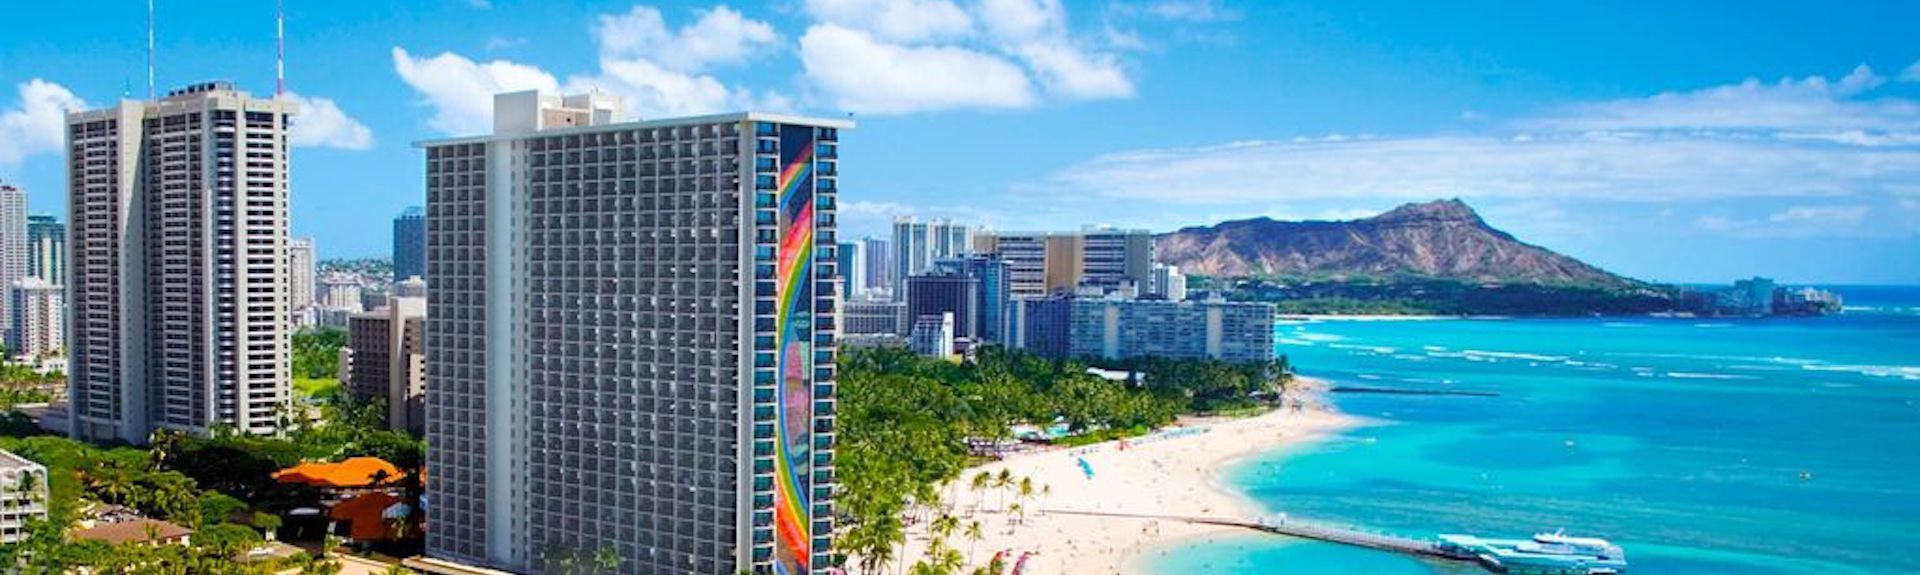 Hilton Hawaiian Village Waikiki Beach Resort, Honolulu, Hawaii, United States of America